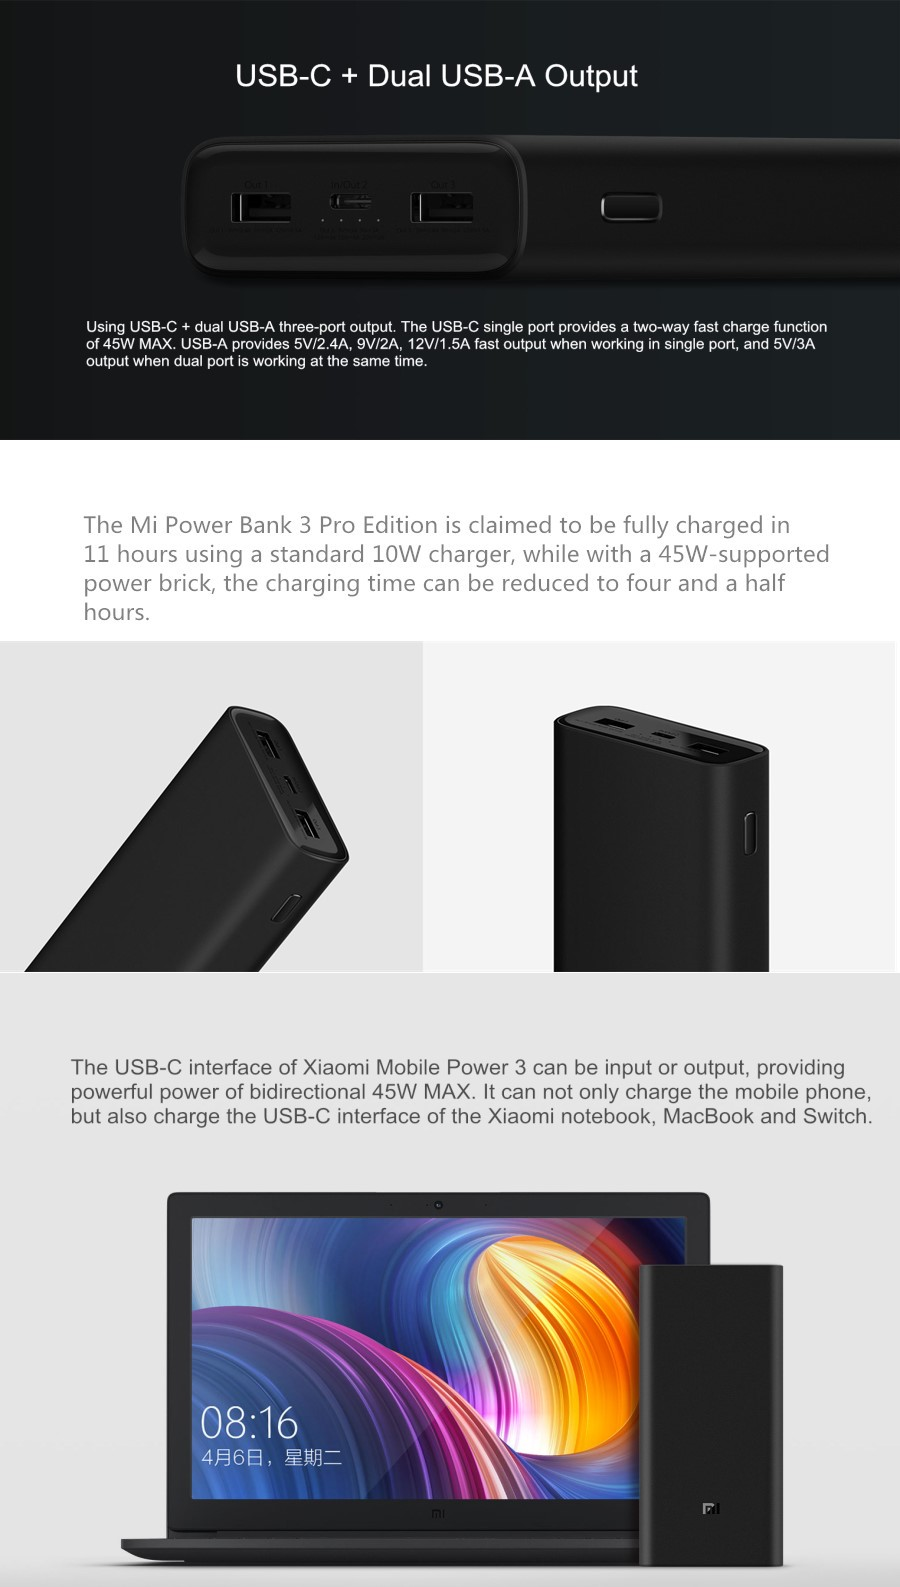 Xiaomi Power Bank 3 Pro 20000mAh USB-C Two-way 45W QC3.0 Fast Charge Power Bank for Mobile Phone Laptop